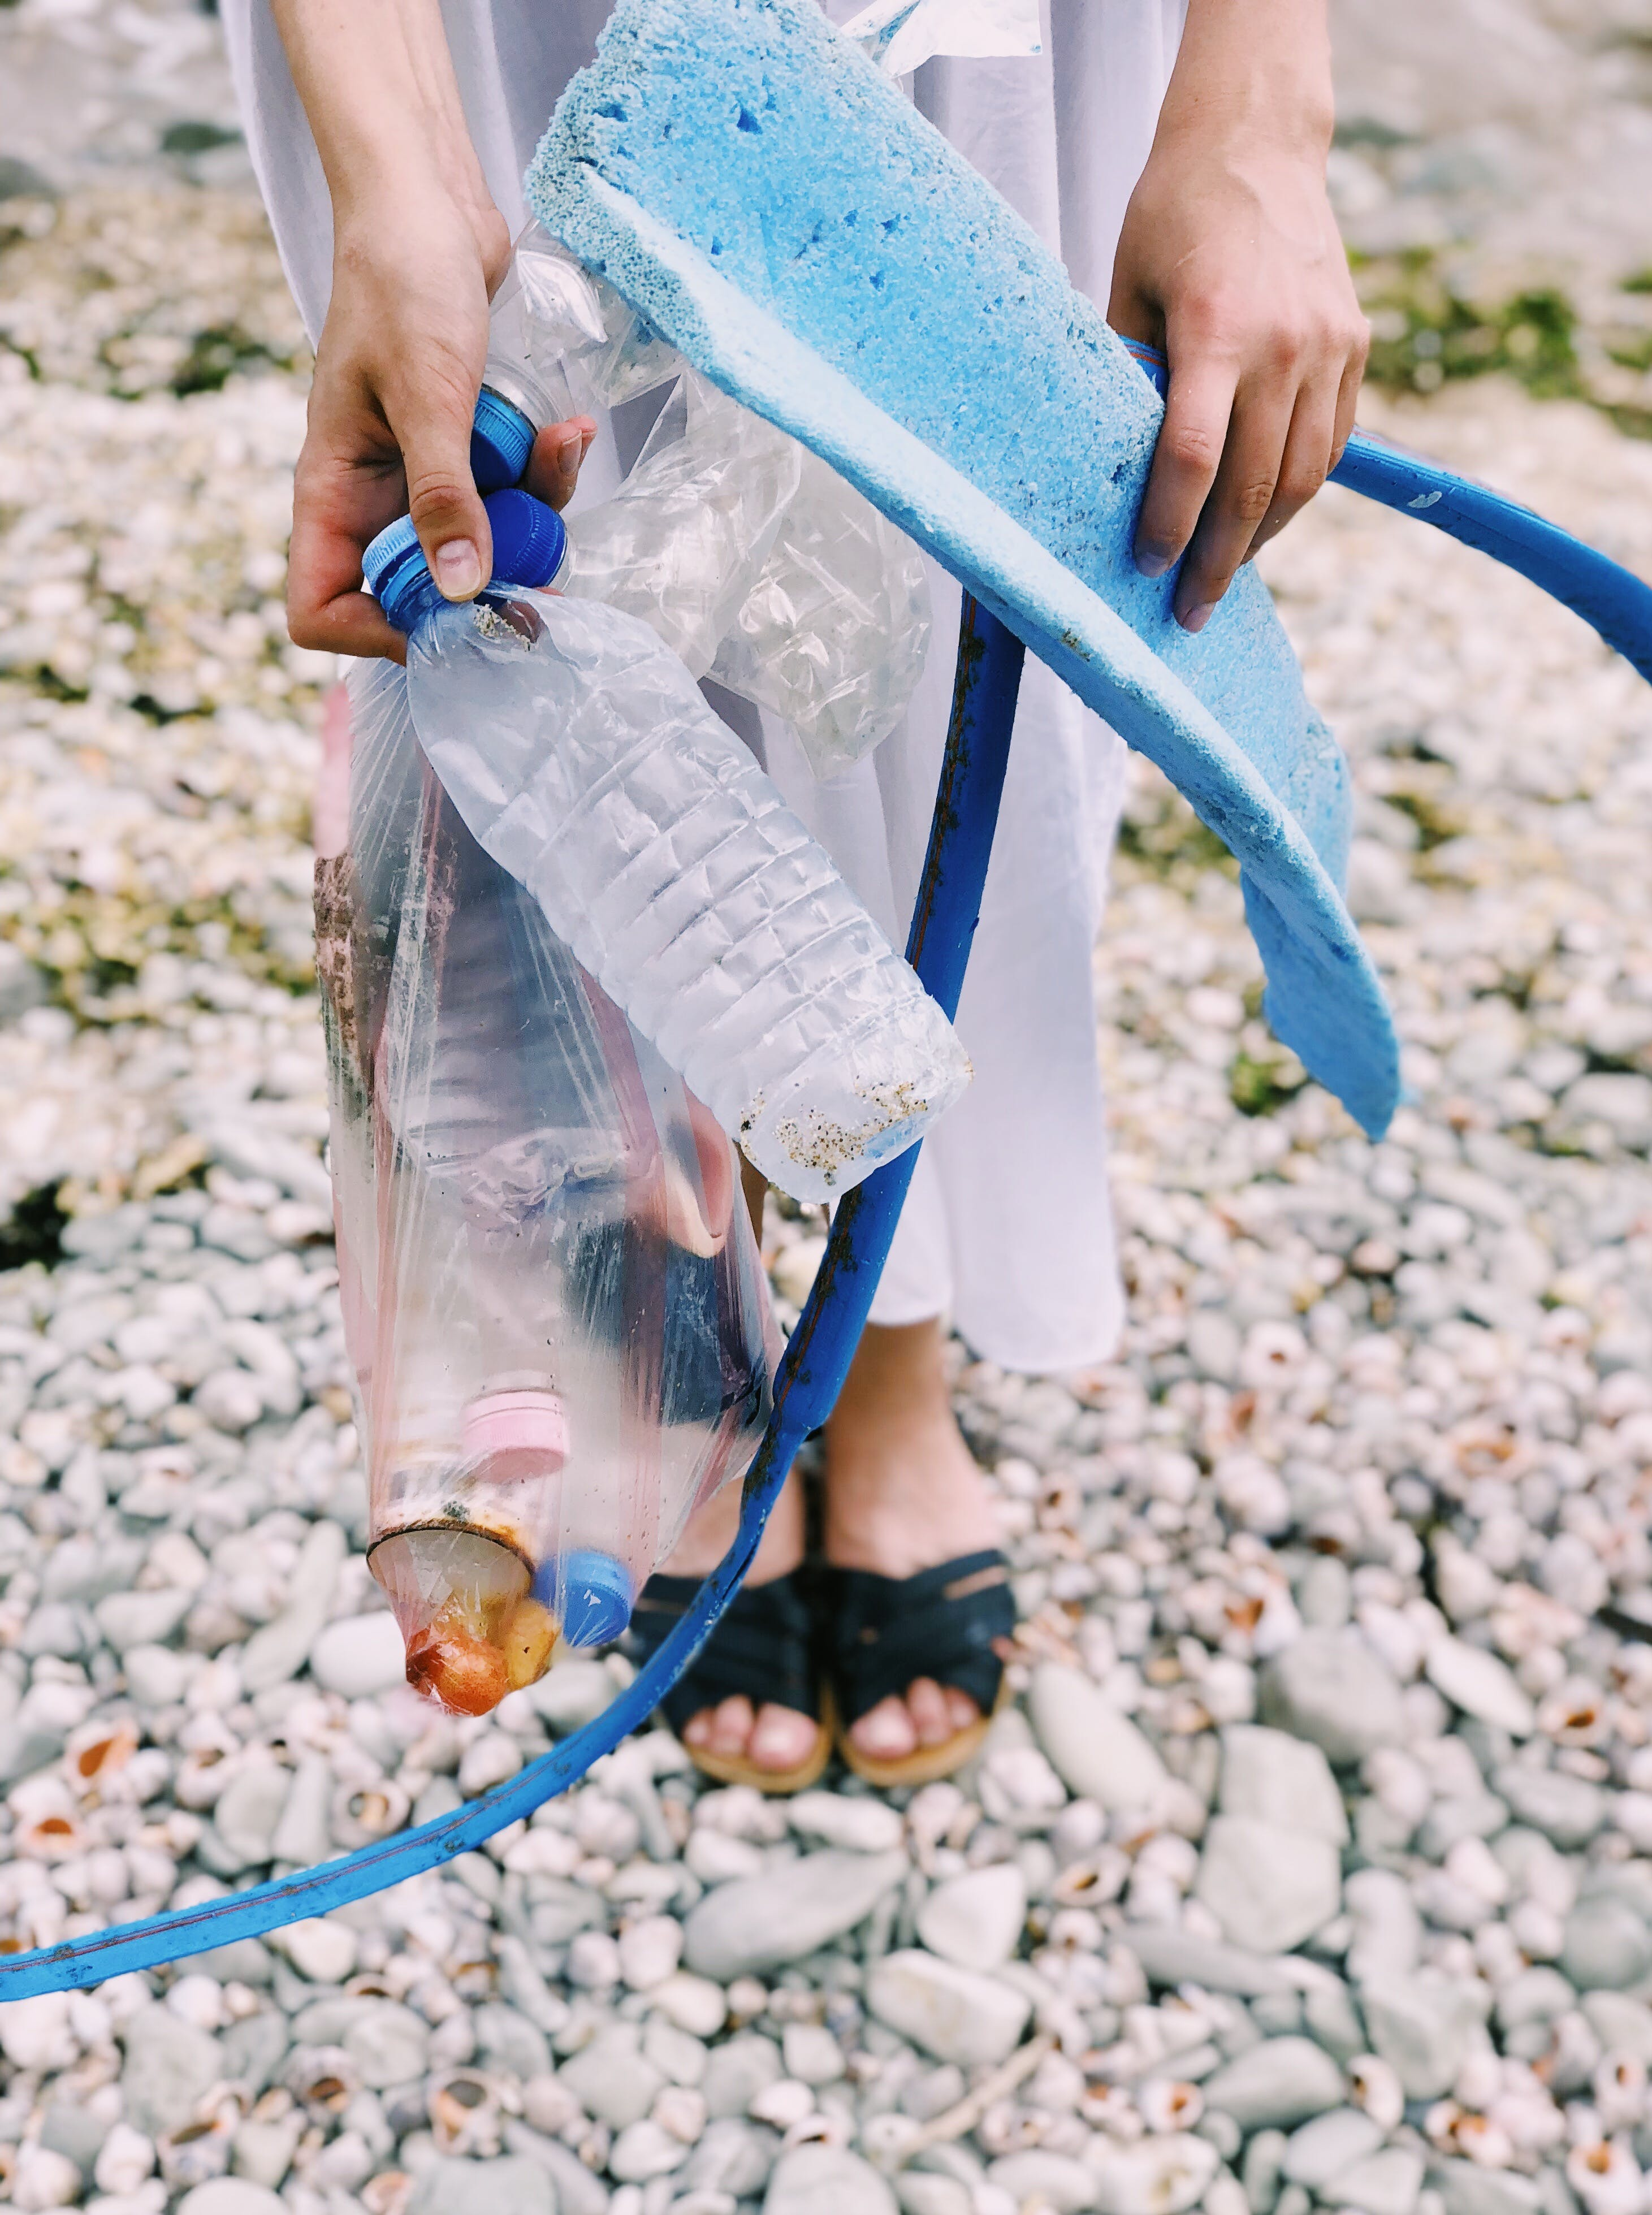 Person Holding Plastic Bottles and Hose